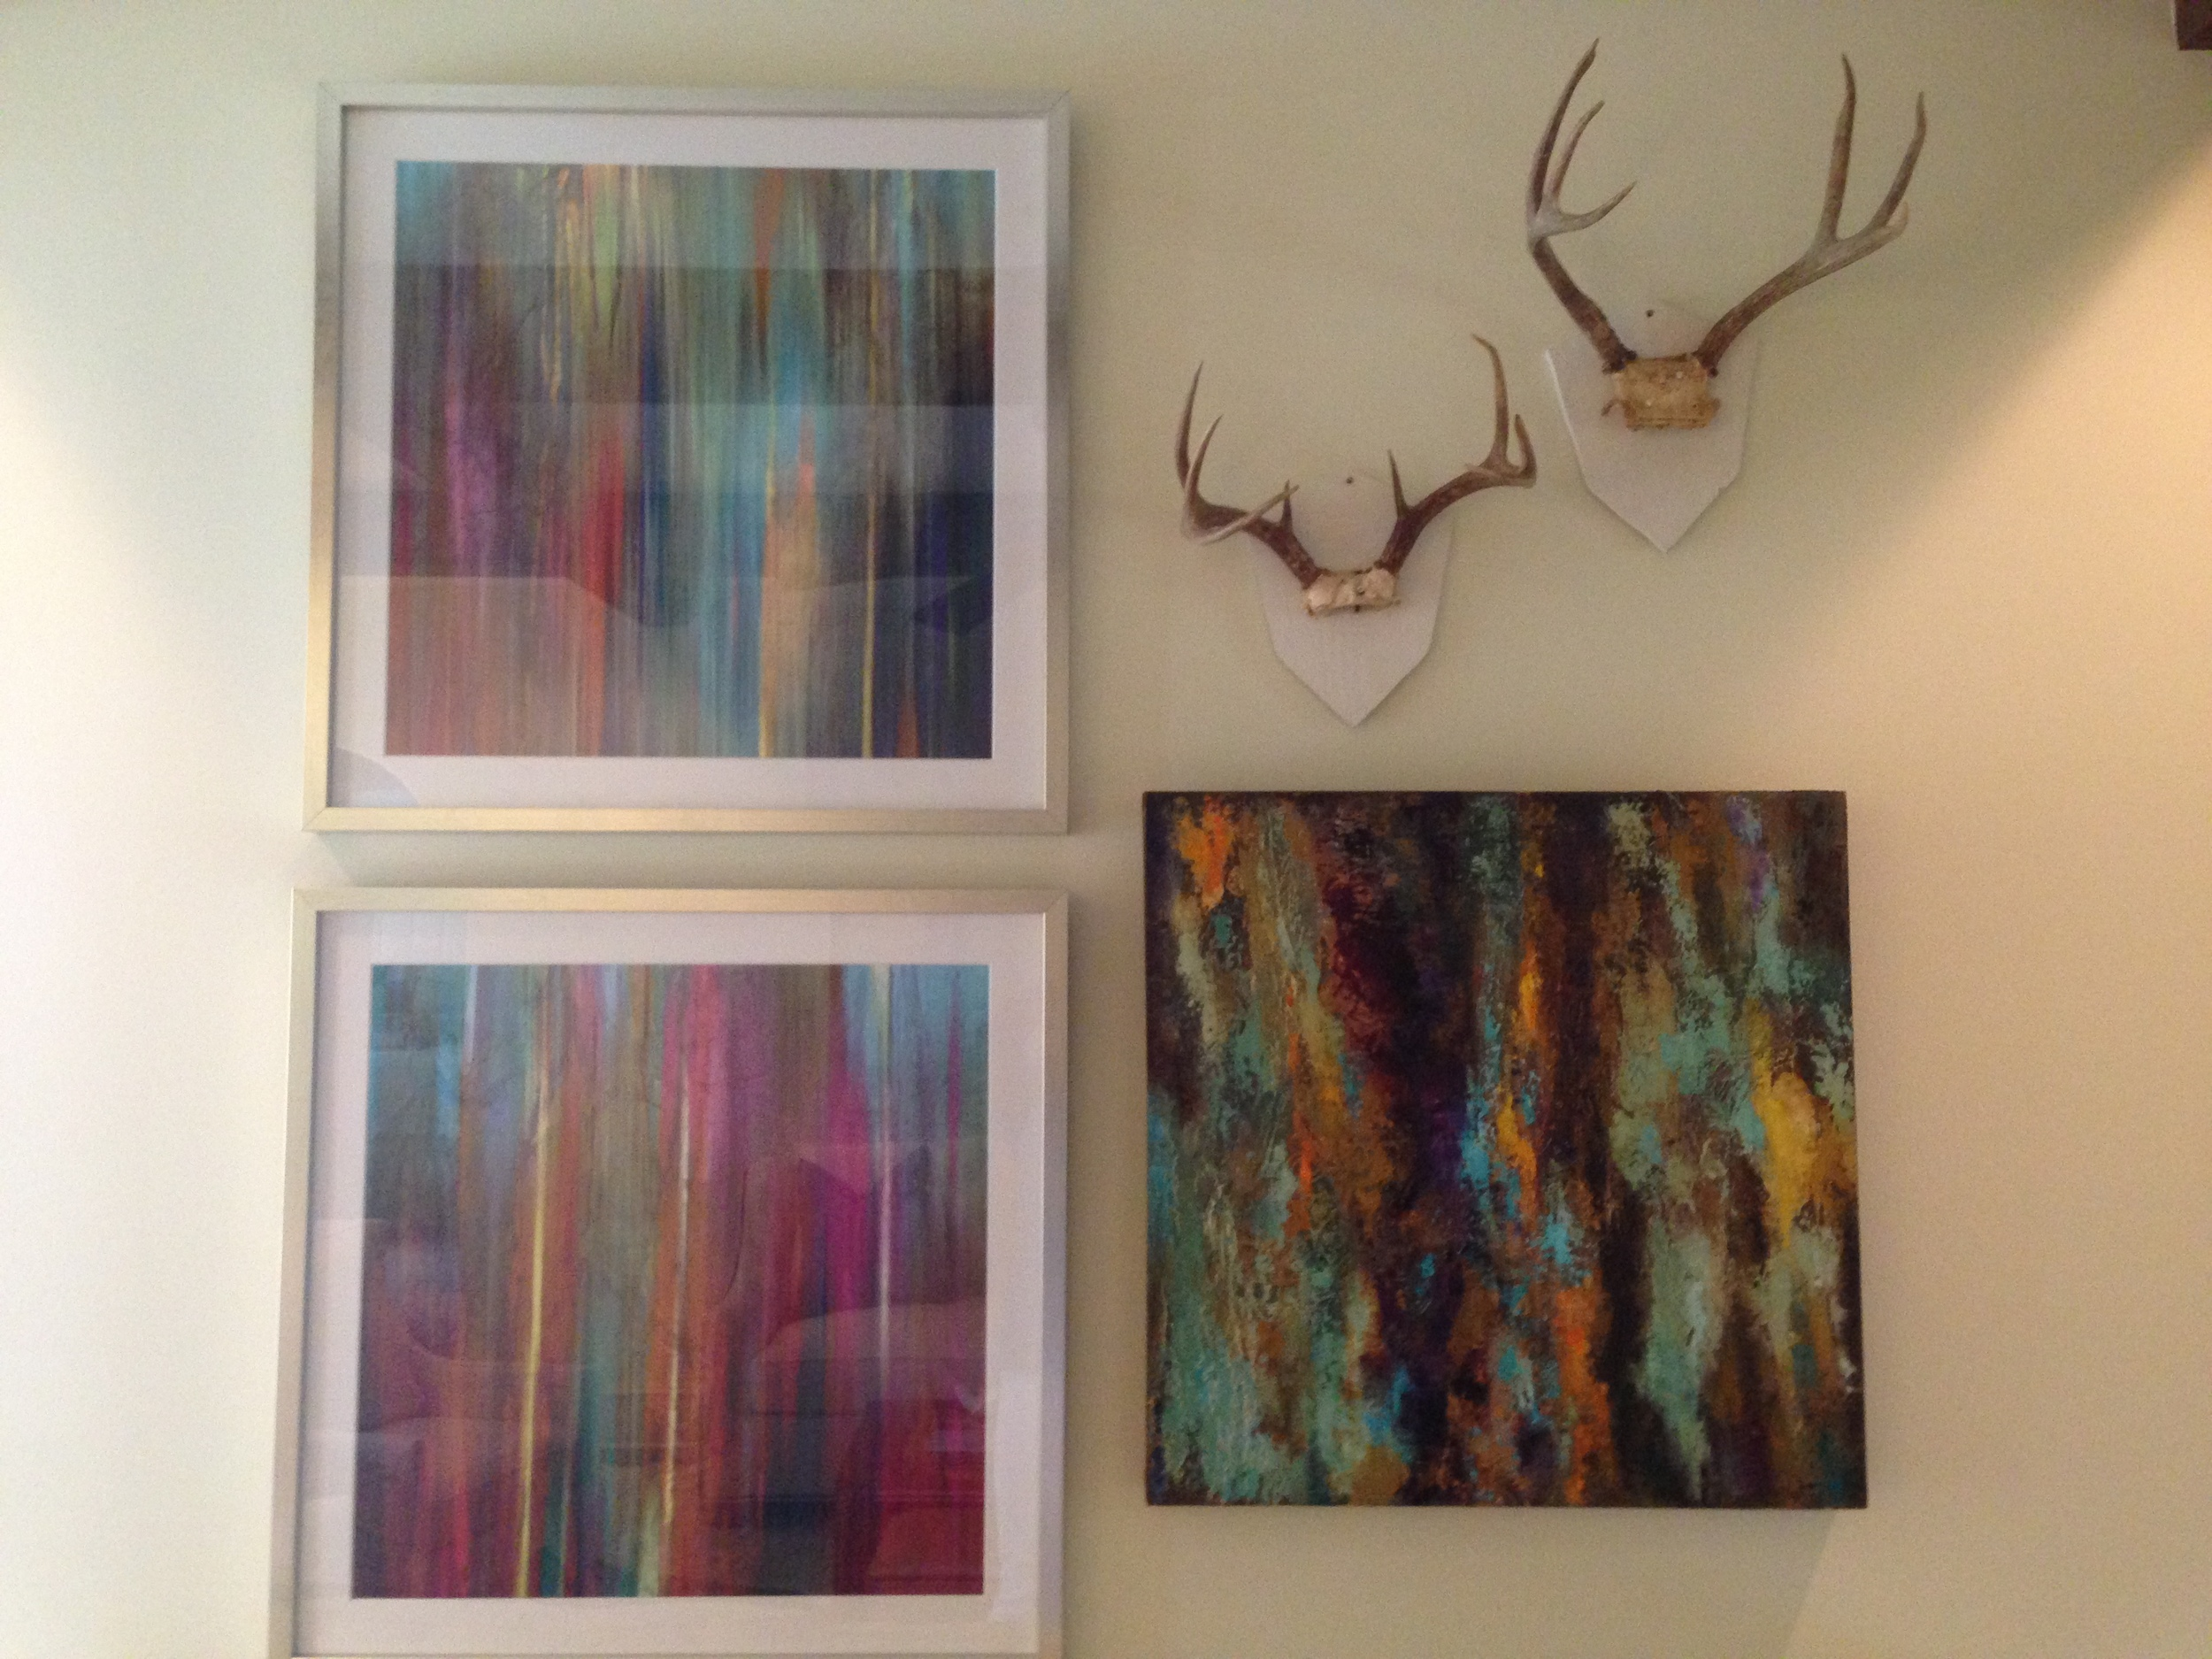 Two framed abstract prints paired with an original by Charlotte Caroom accented with two deer horns on white plaques